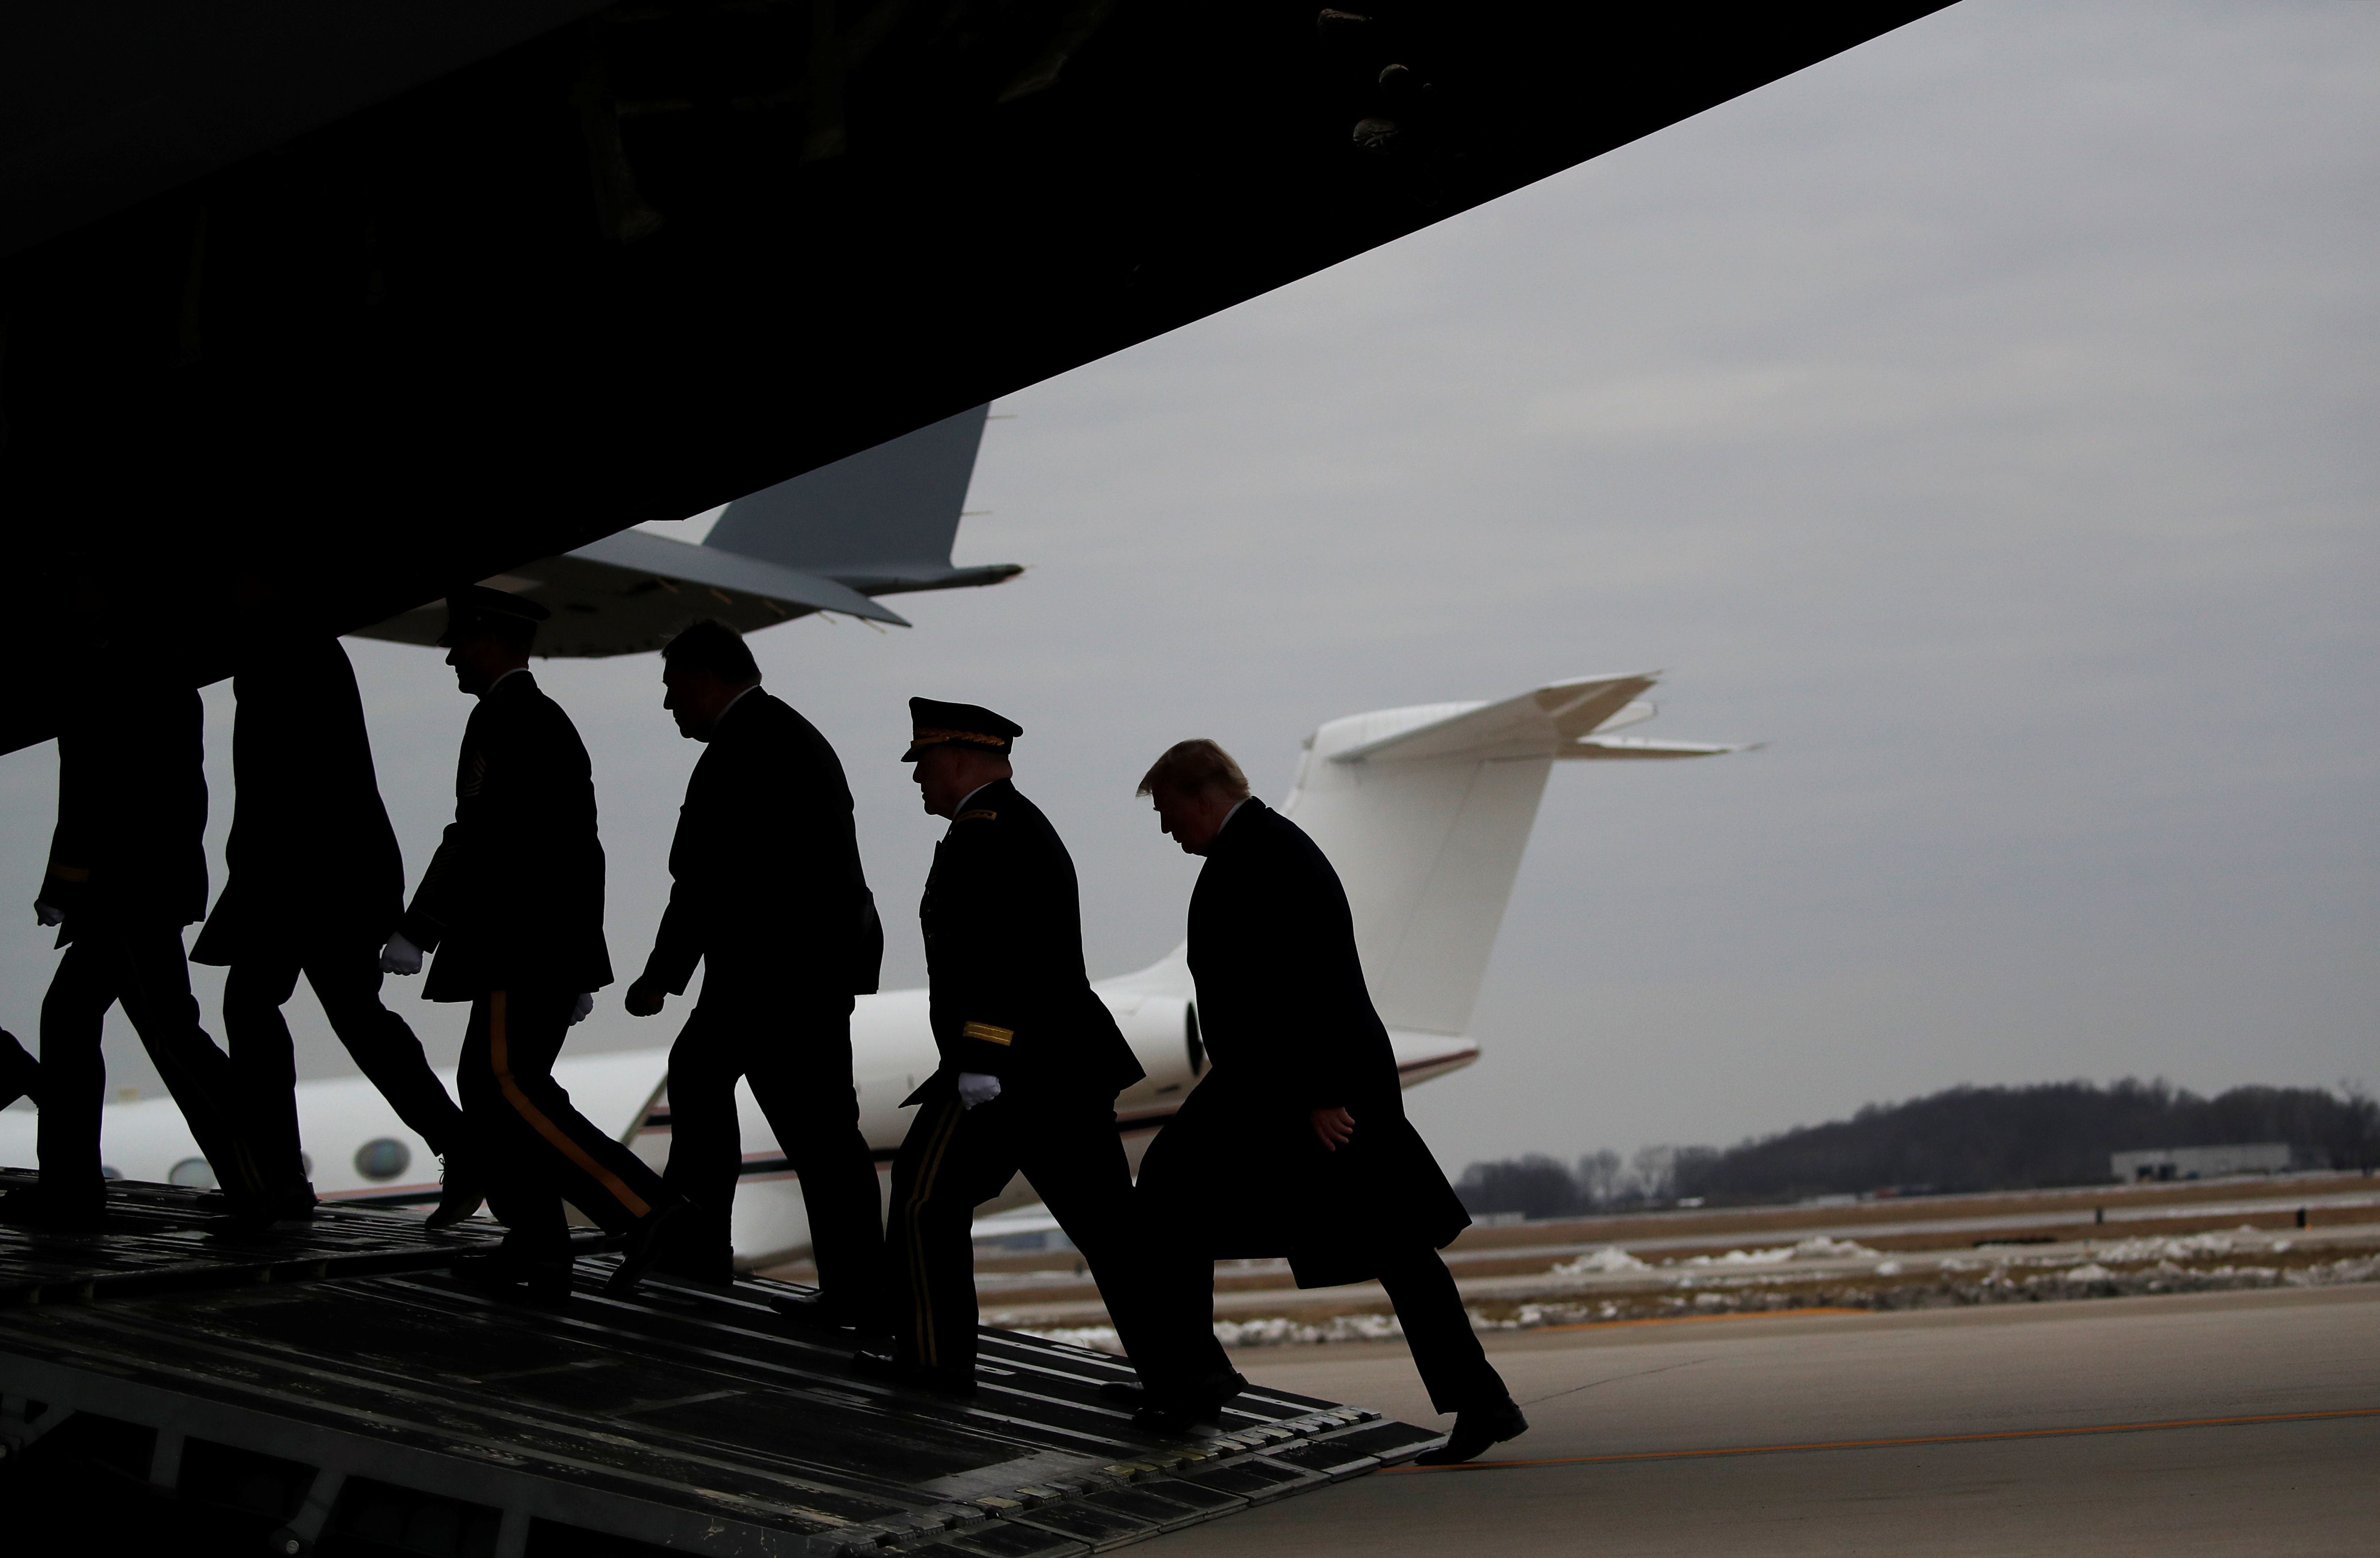 U.S. President Donald Trump follows U.S. military leaders, Secretary of State Mike Pompeo and a military honor guard into the back of an Air Force transport plane as they retrieve the remains of Scott Wirtz, a civilian employee of the U.S. Defense Intelligence Agency killed along with three members of the U.S. military during a recent attack in Syria, at the start of a dignified transfer ceremony at Dover Air Force Base, in Dover, Delaware, U.S., January 19, 2019. REUTERS/Carlos Barria